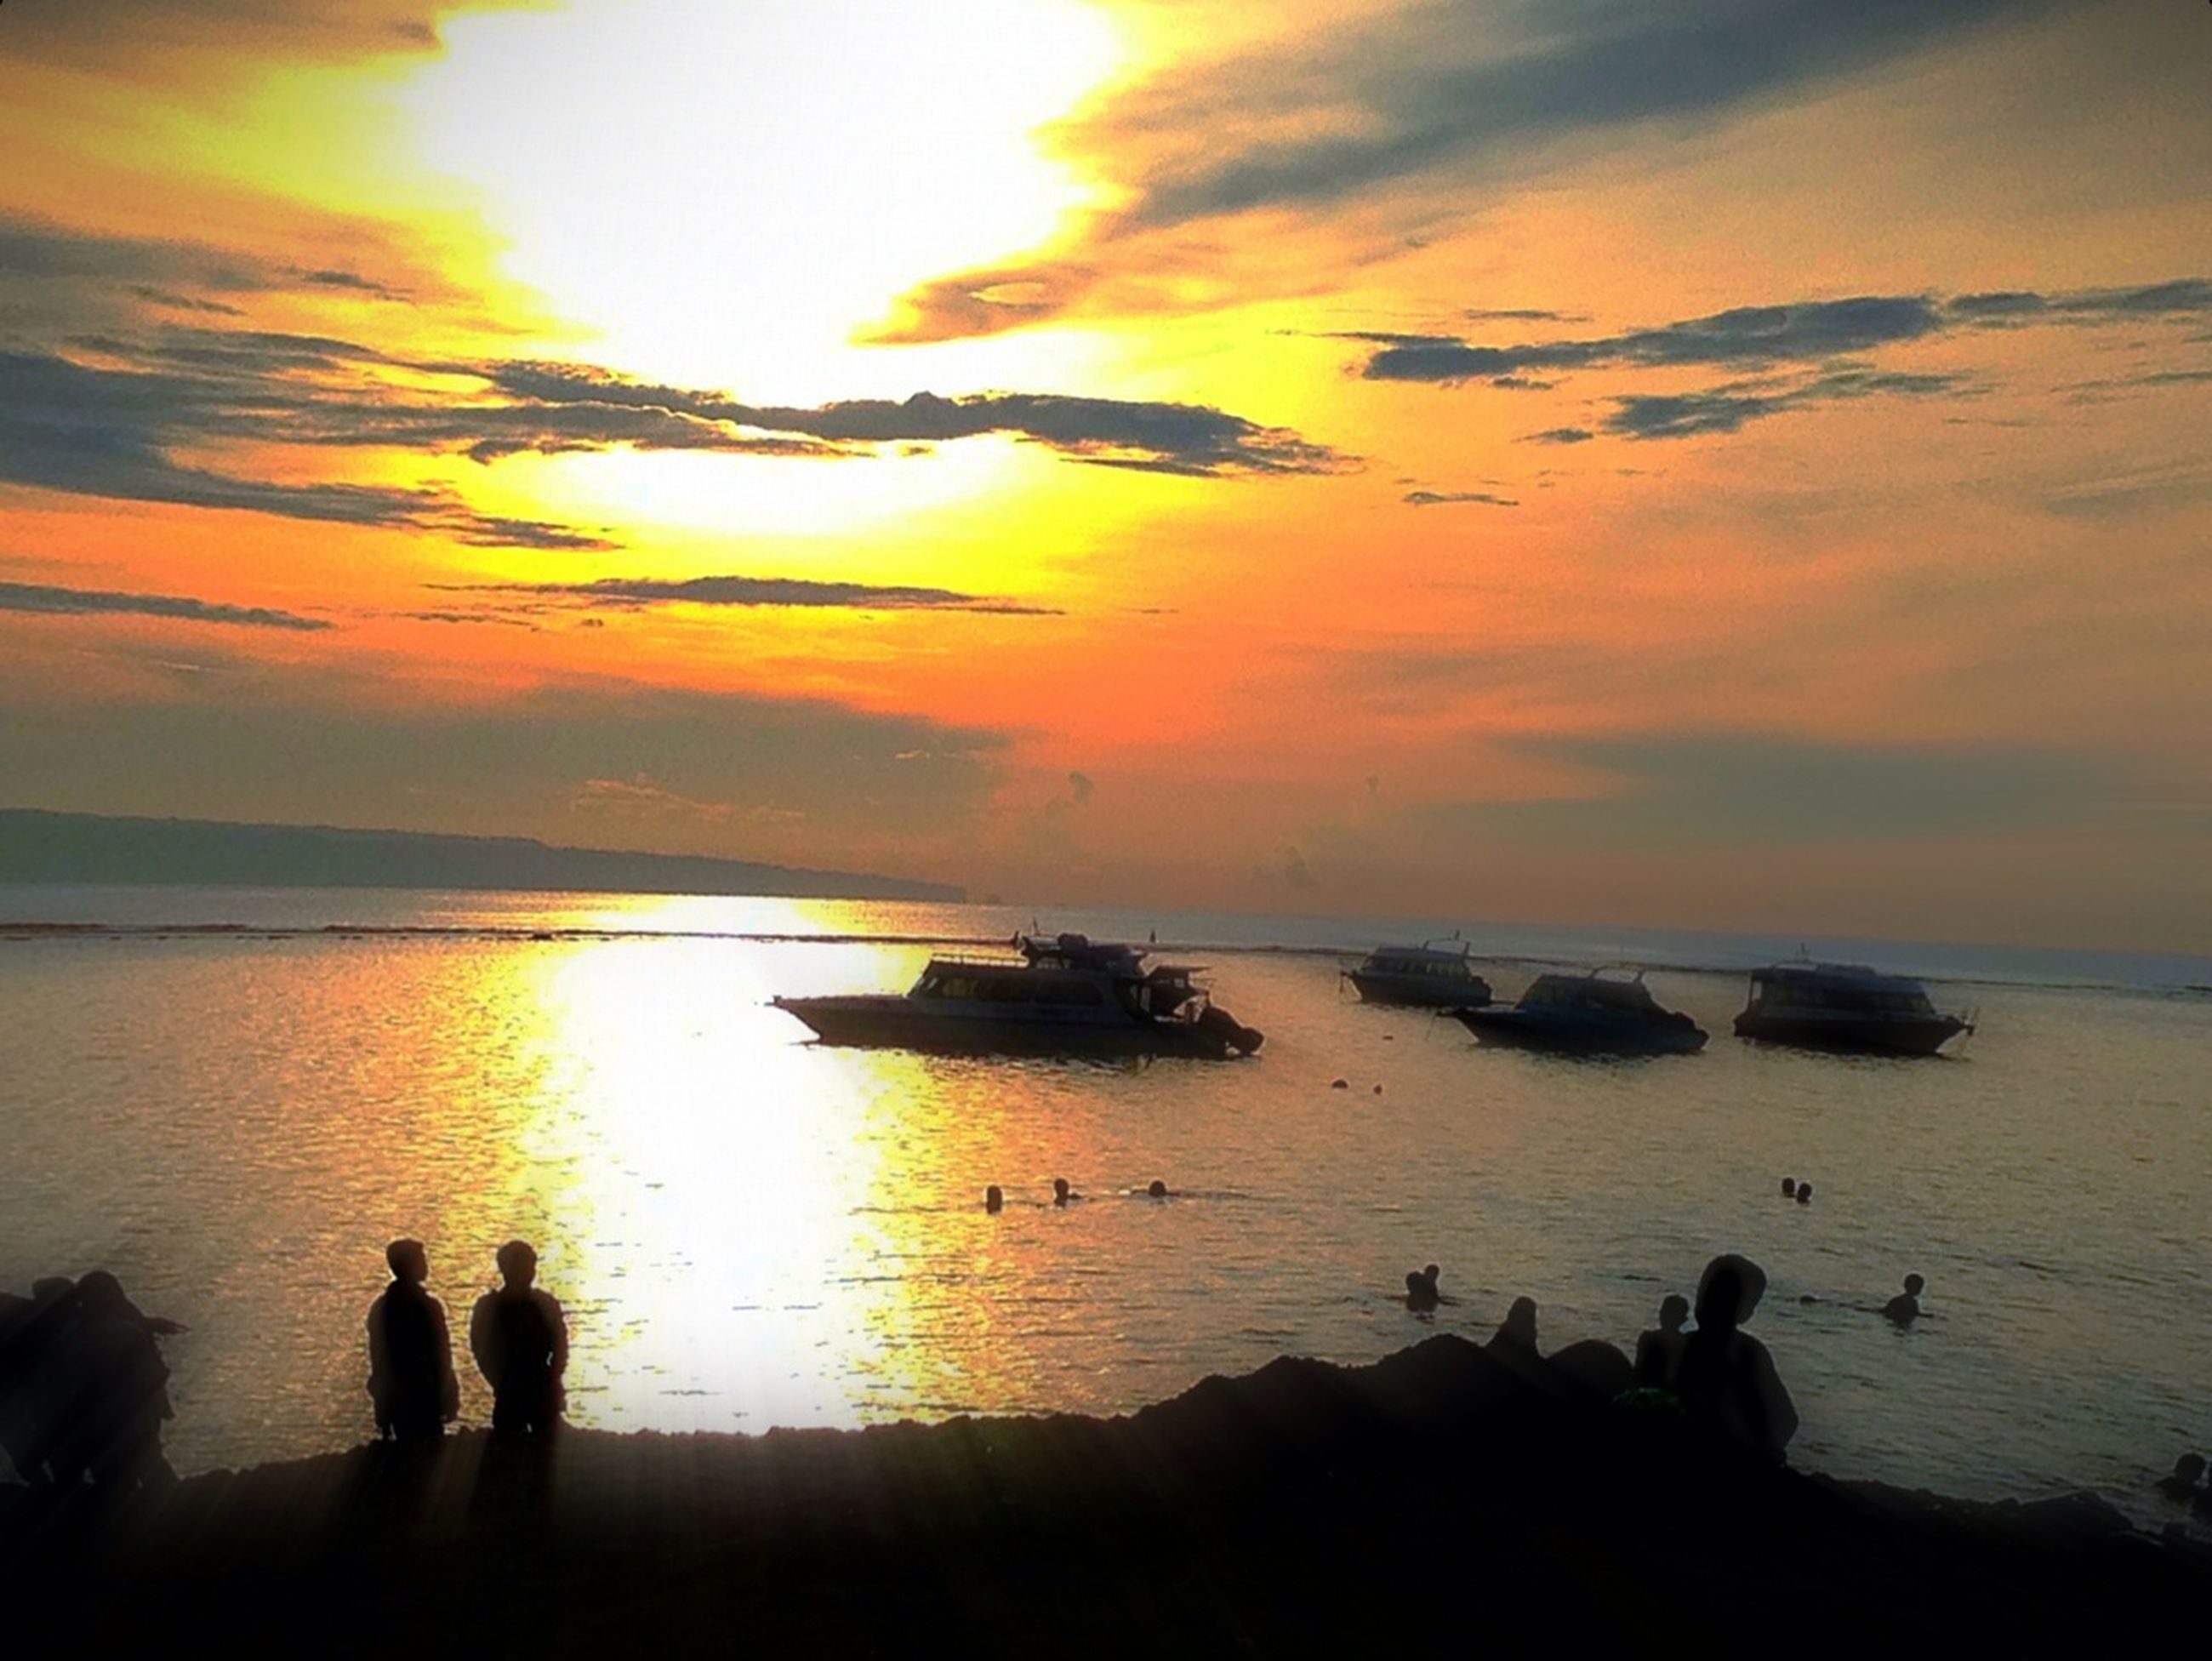 sunset, sea, water, horizon over water, silhouette, scenics, beach, beauty in nature, sky, sun, tranquil scene, tranquility, orange color, shore, reflection, idyllic, nature, leisure activity, medium group of people